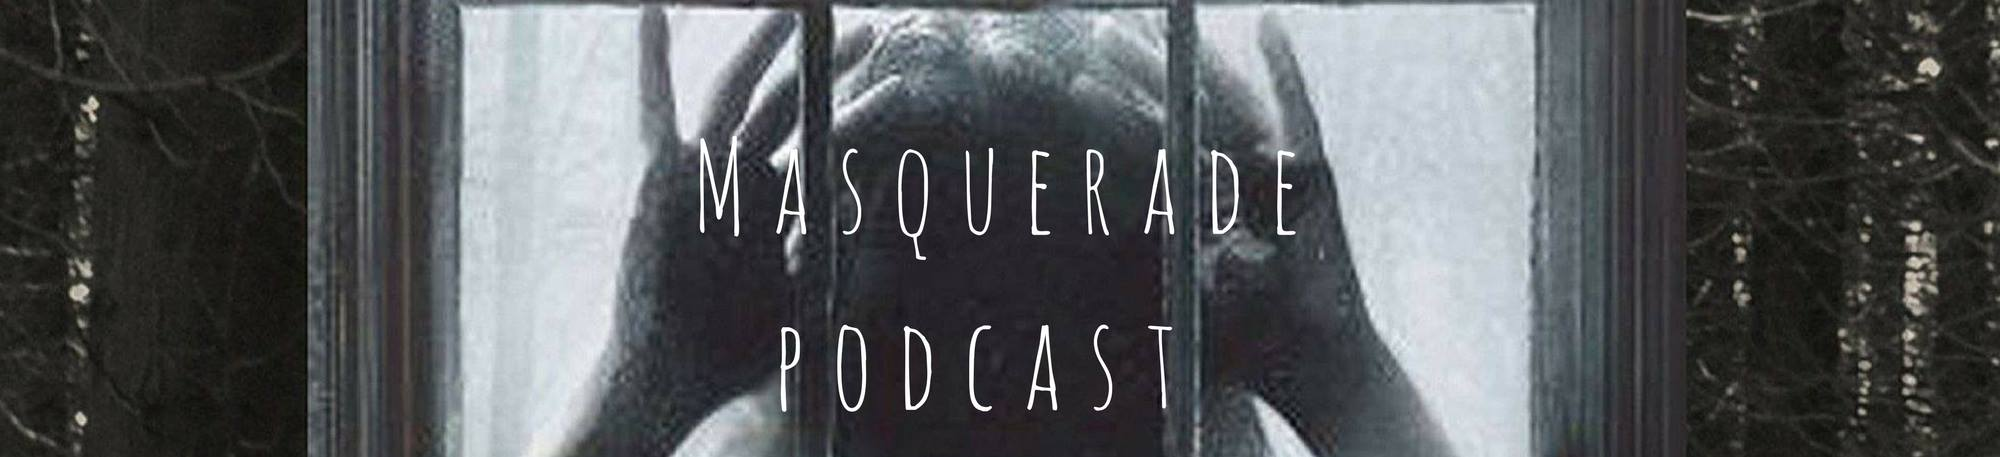 Masquerade Podcast with Steph Young